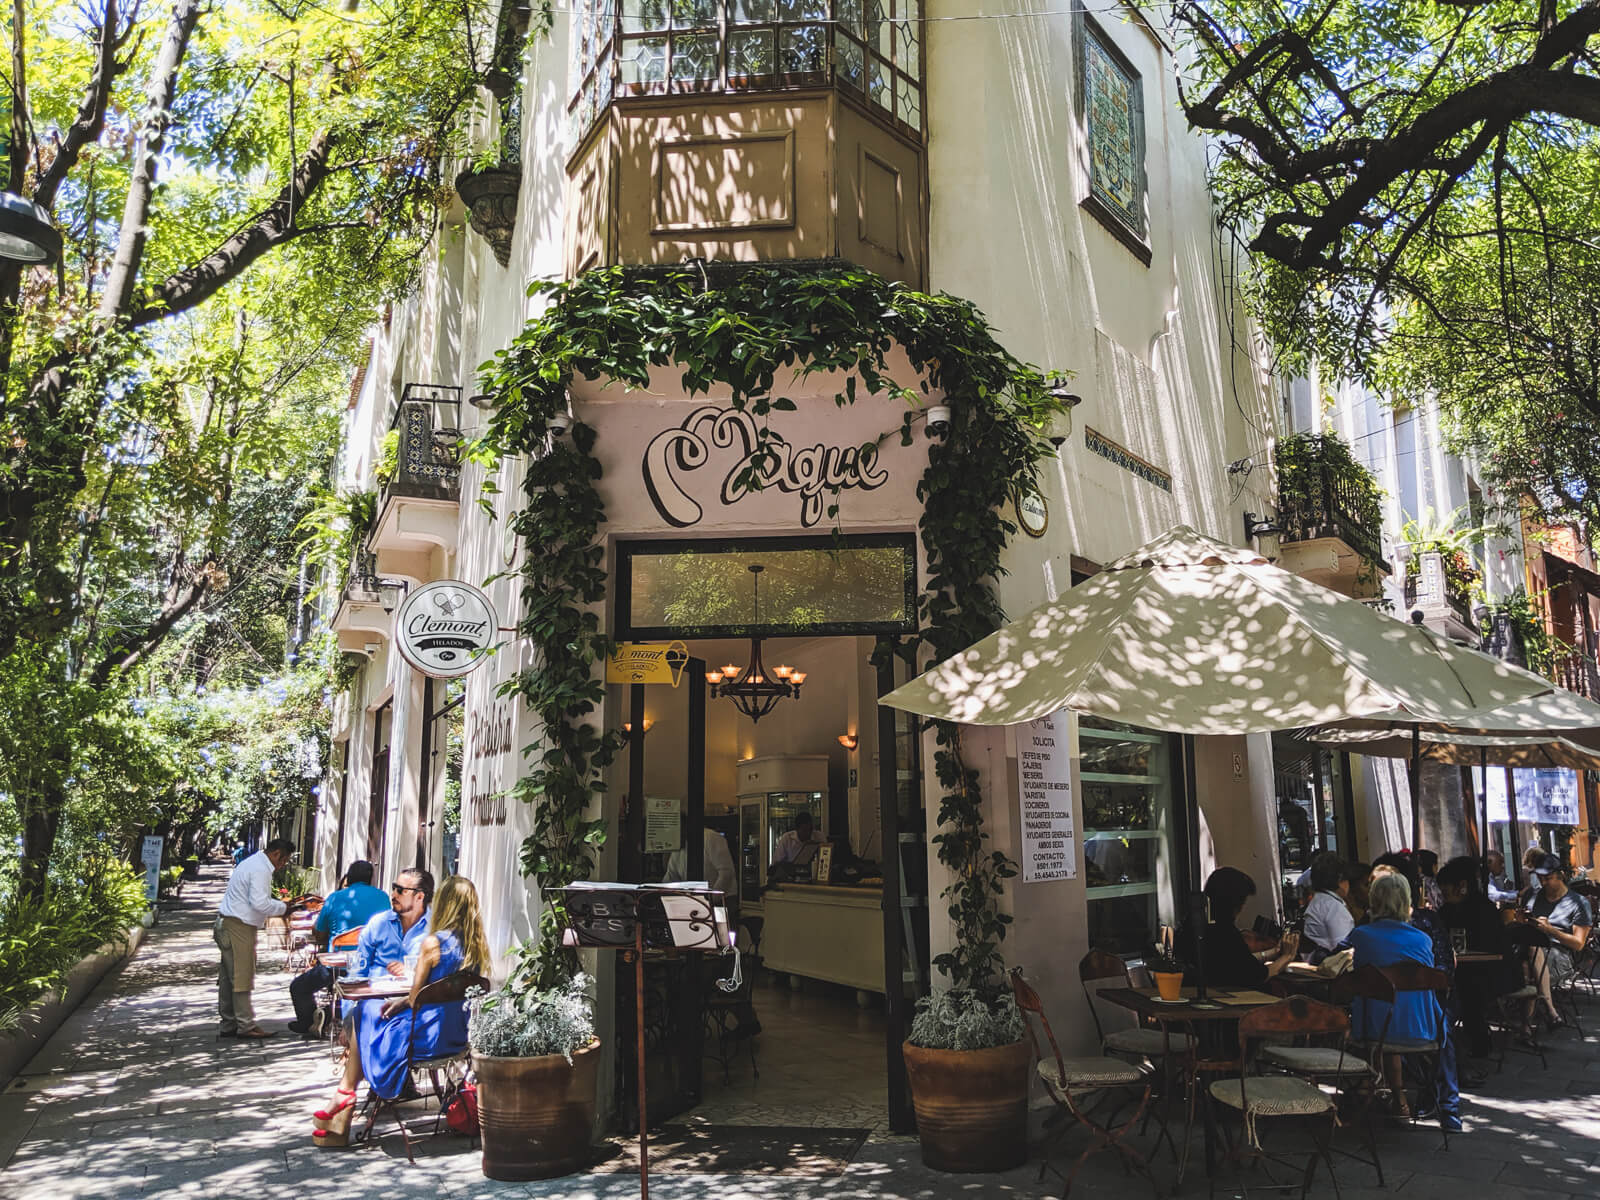 A coffee shop stands on a tree lined street corner in Mexico City